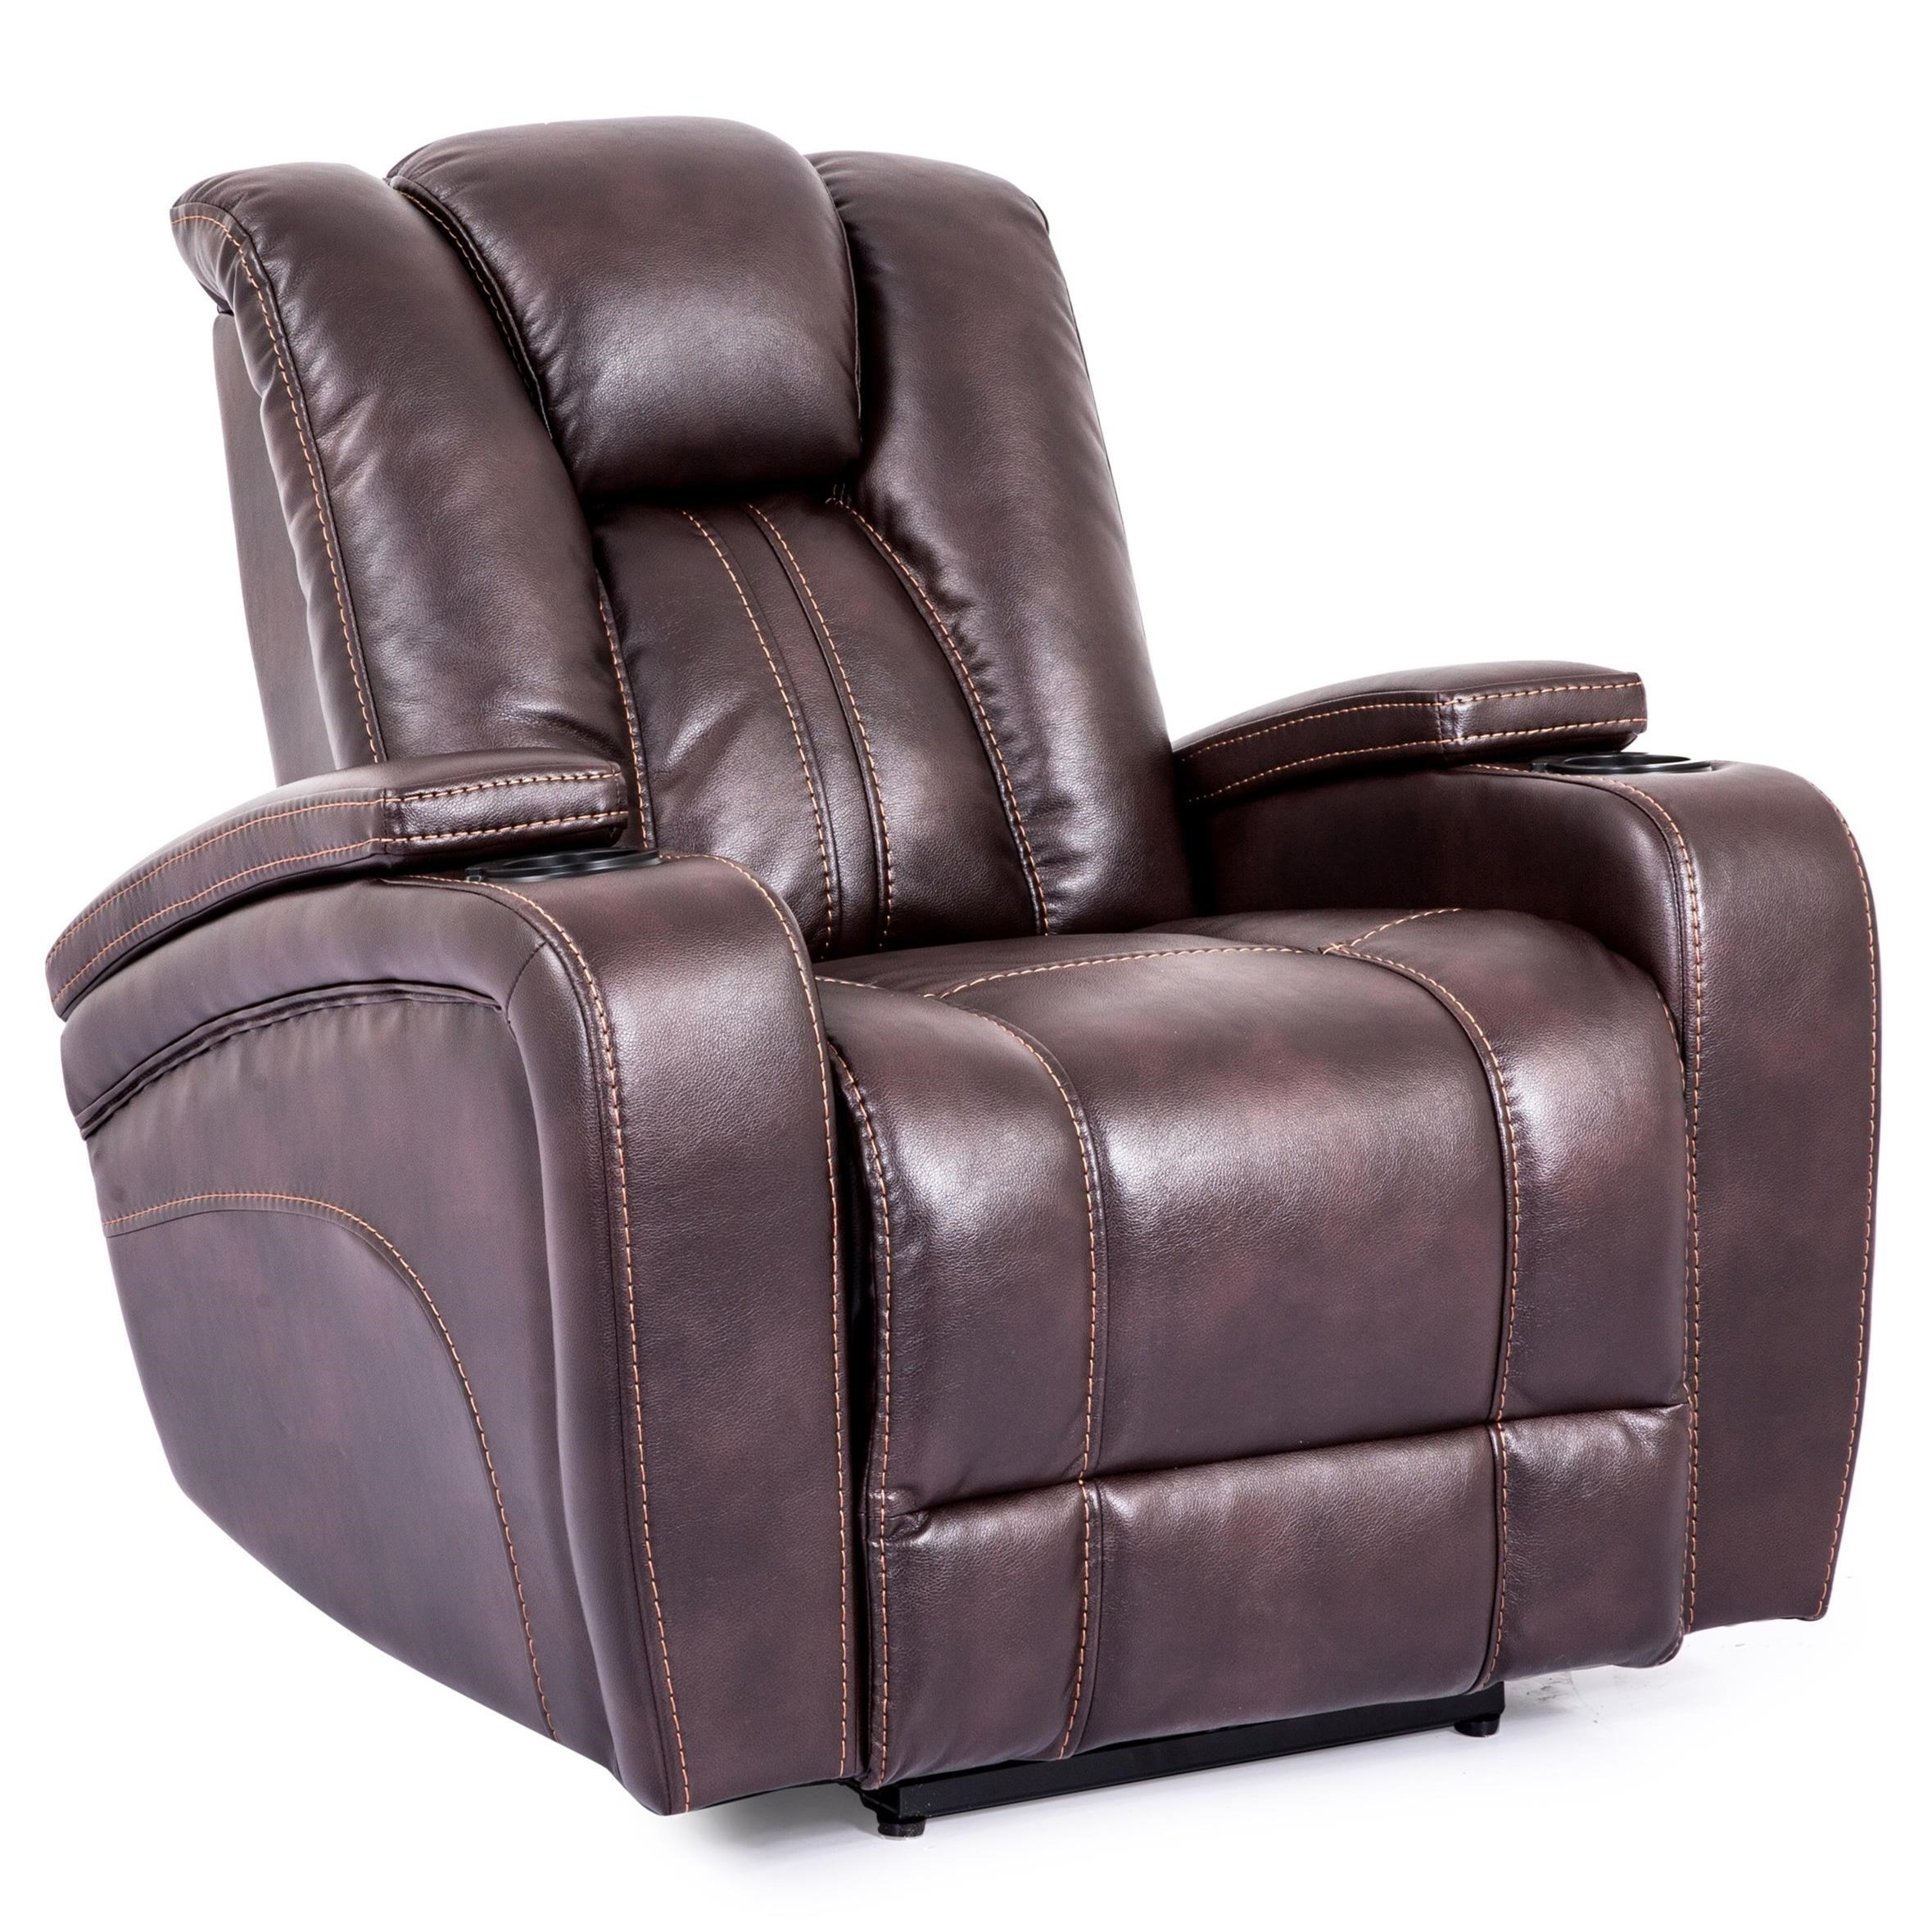 Attirant Cheers Sofa 9990M Power Recliner With Arm Storage Compartments